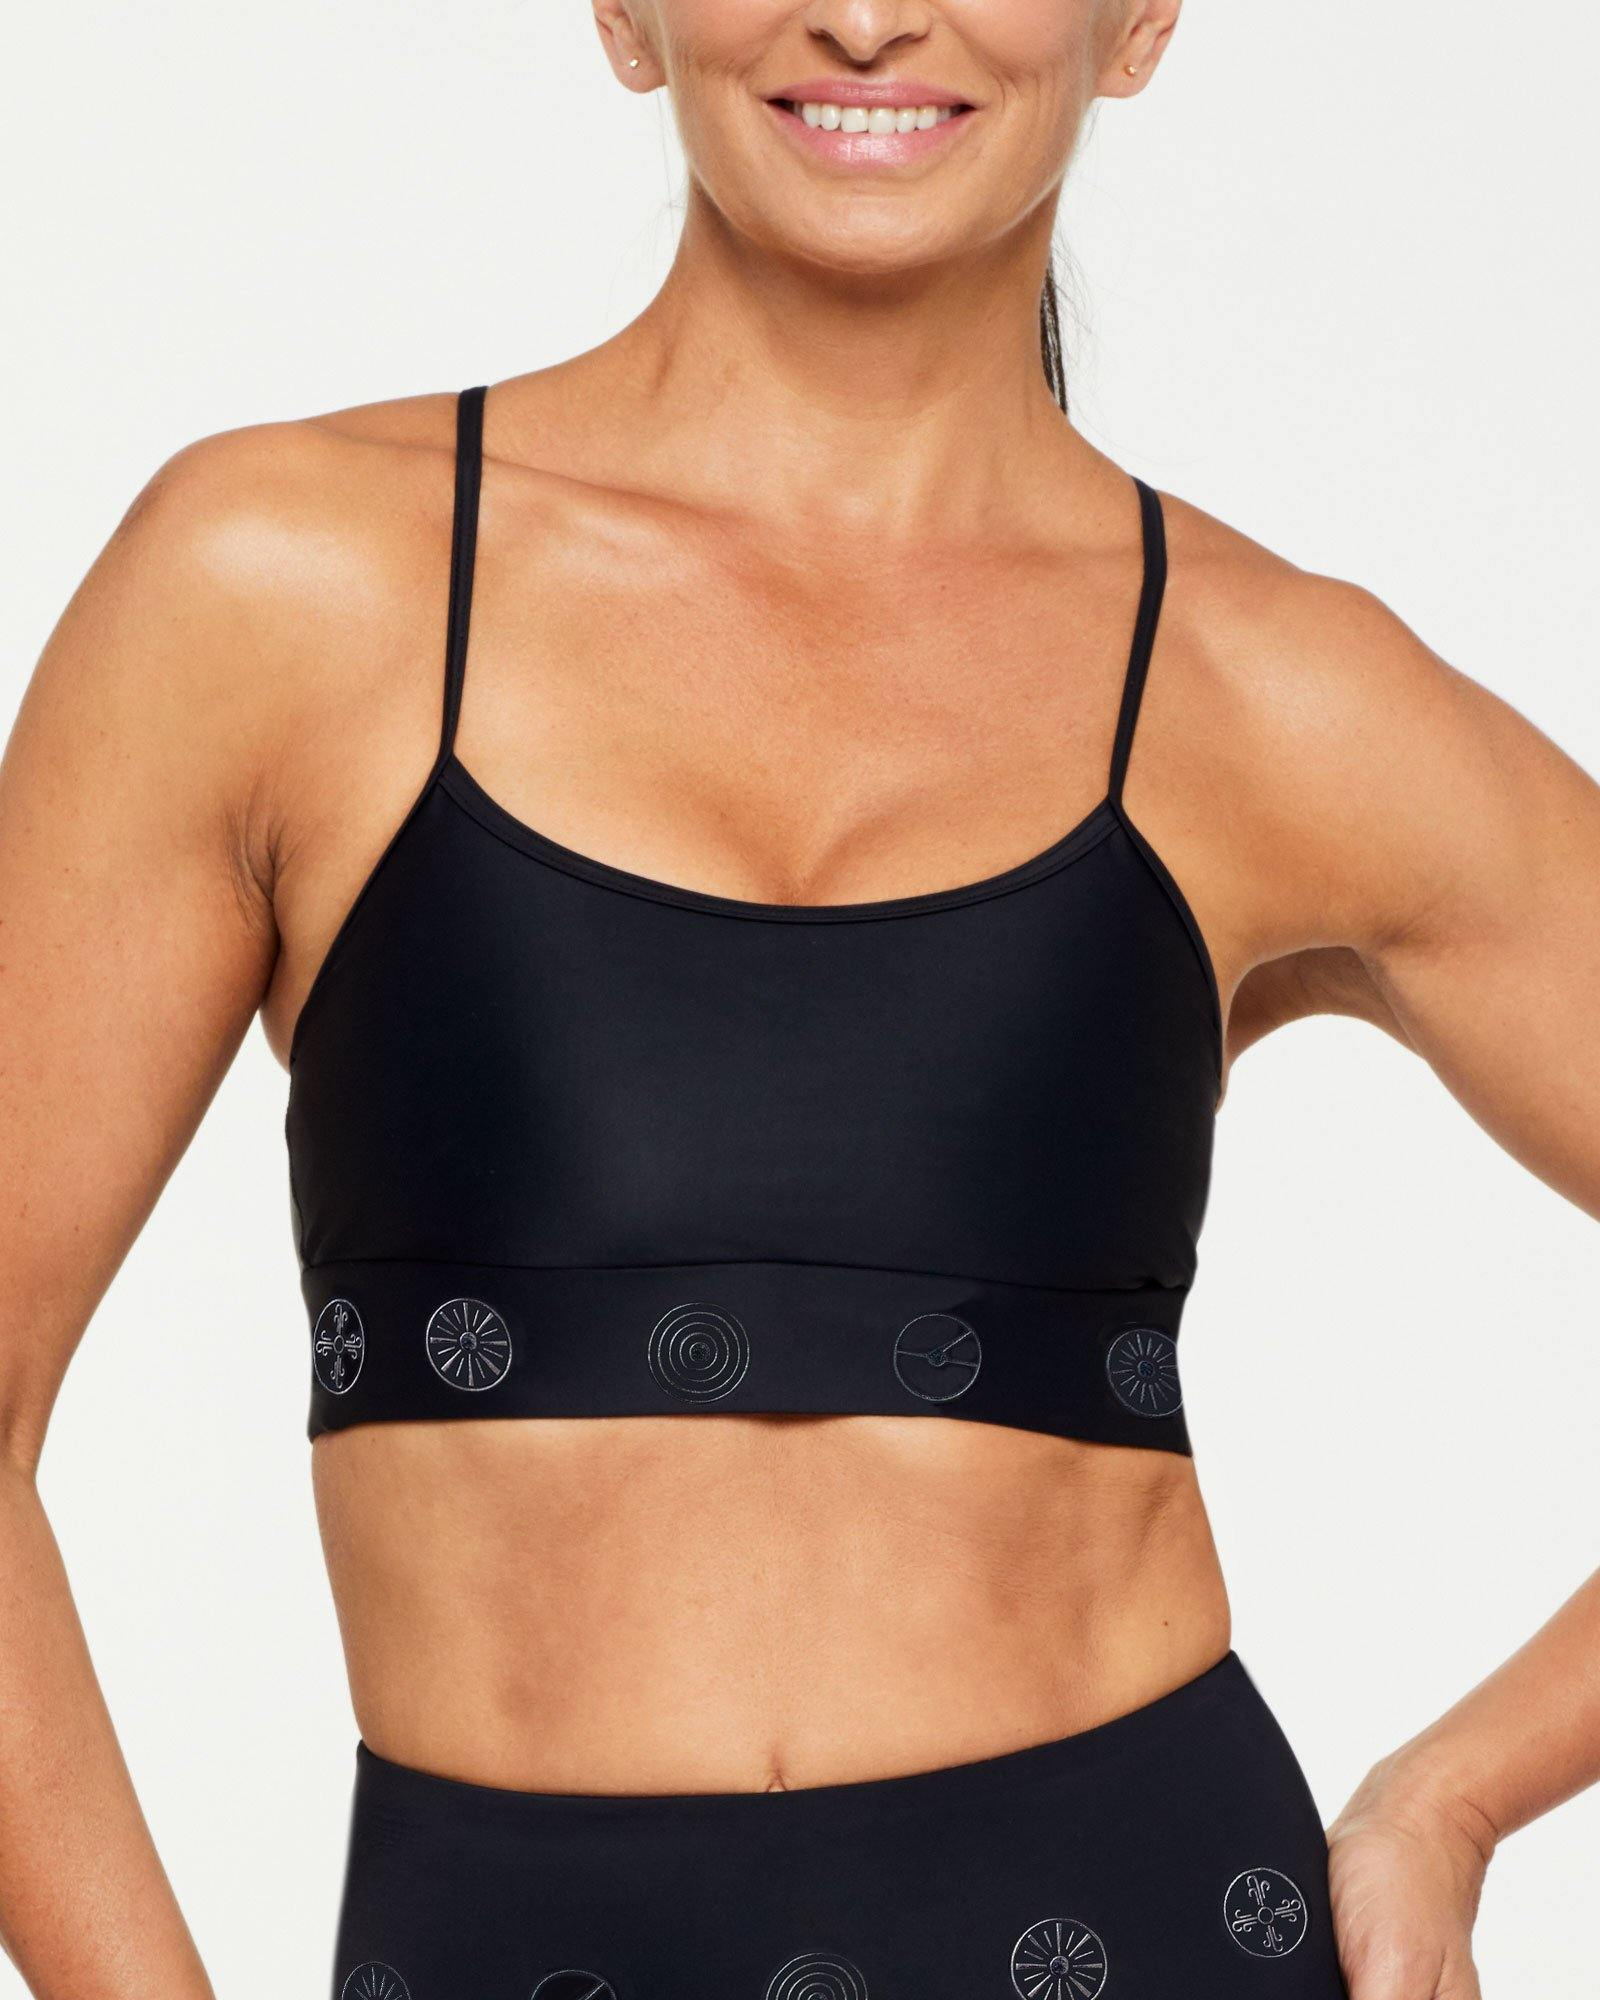 Companion Infraspinatus Bra top BLACK WITH BLACK SYMBOLS, FRONT VIEW